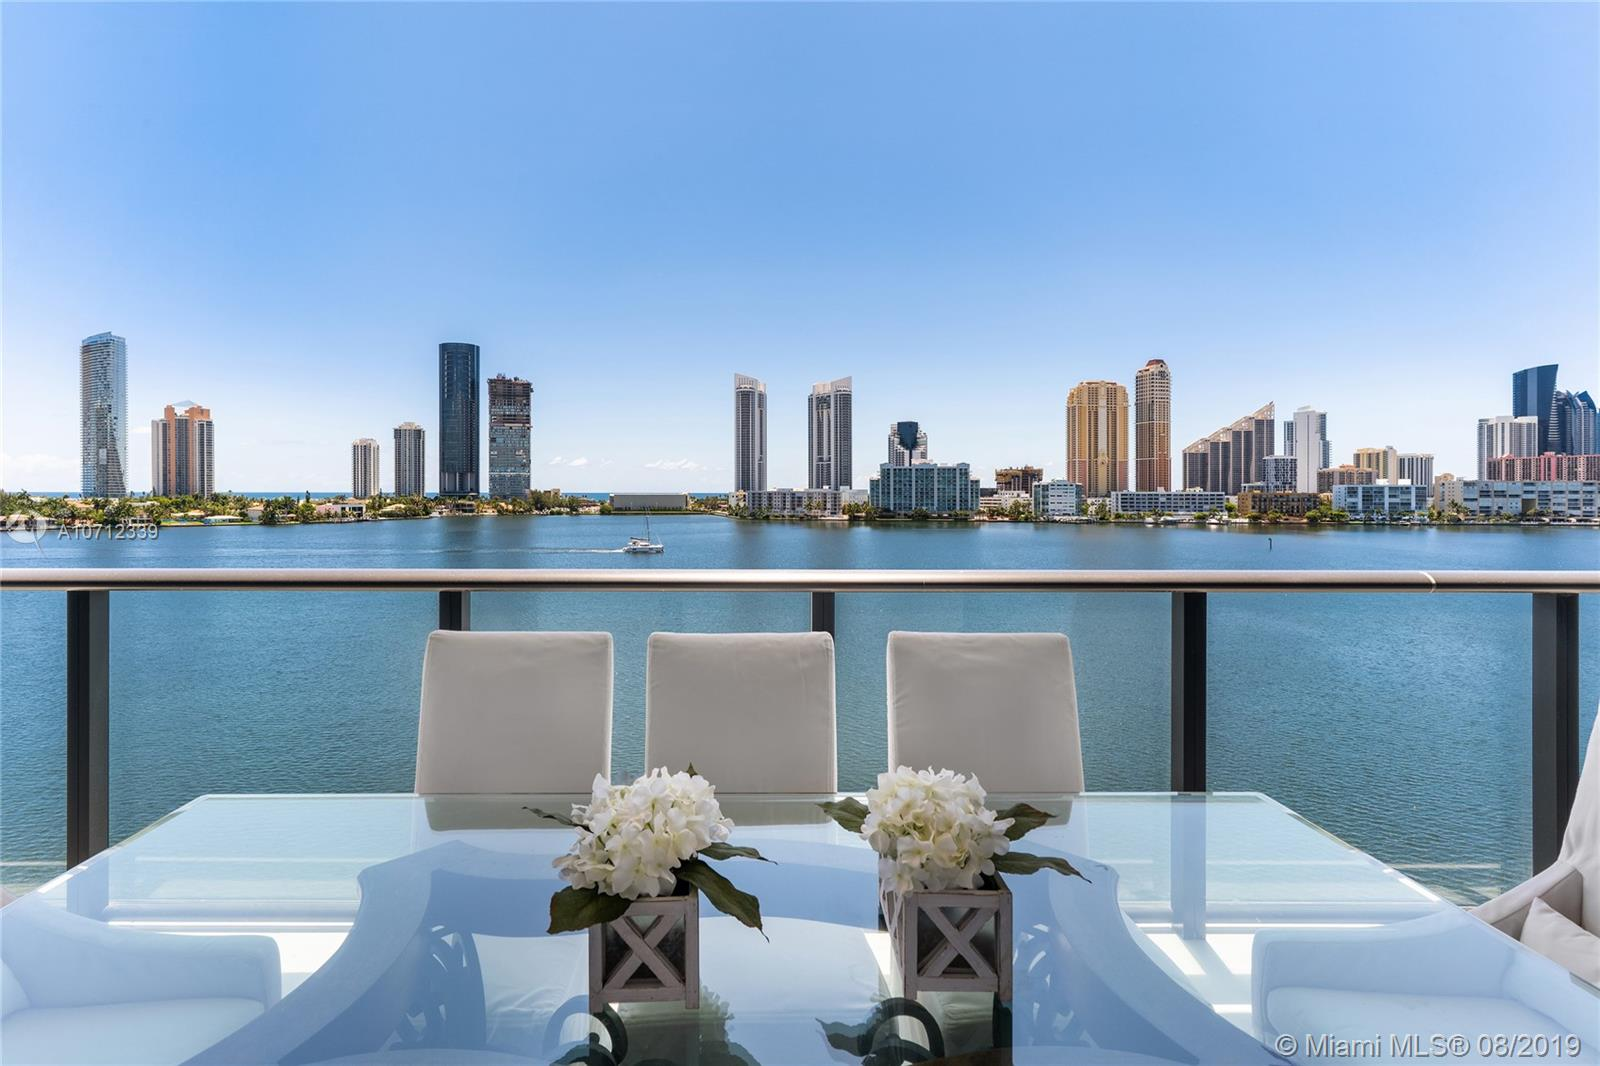 Bright and beautiful! 4 bedrooms and 5.5 bath residence with over 3400 SF. Of living area. Beautiful flooring and lighting details throughout, custom closets and doors, and exquisite designer furnishings. Incredible building amenities include marina, tennis, private beach, billiards, teen and children's room, restaurant, bar and spa. Please call us for additional details! Unit can be available with an additional turnkey suite which includes it's own bedroom, kitchen and bathroom; with beautiful water views. Price upon request.